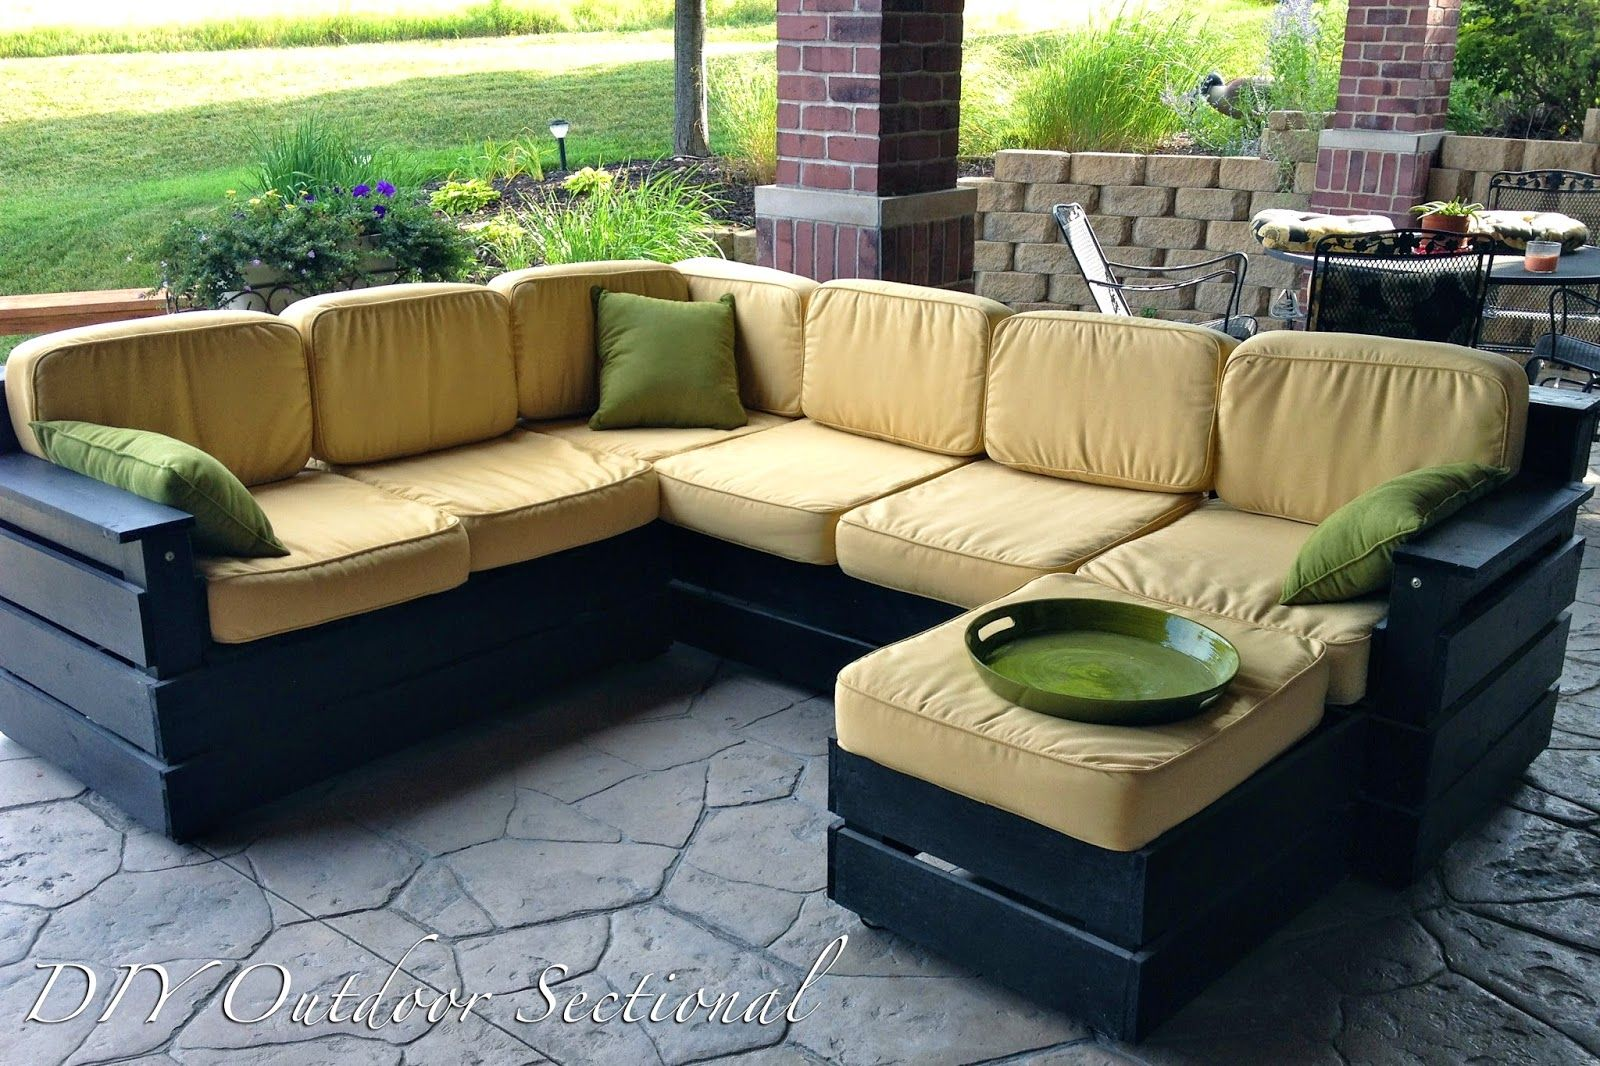 Outdoor Couch Diy Outdoor Sectional Build It Yourself Out Of Regular